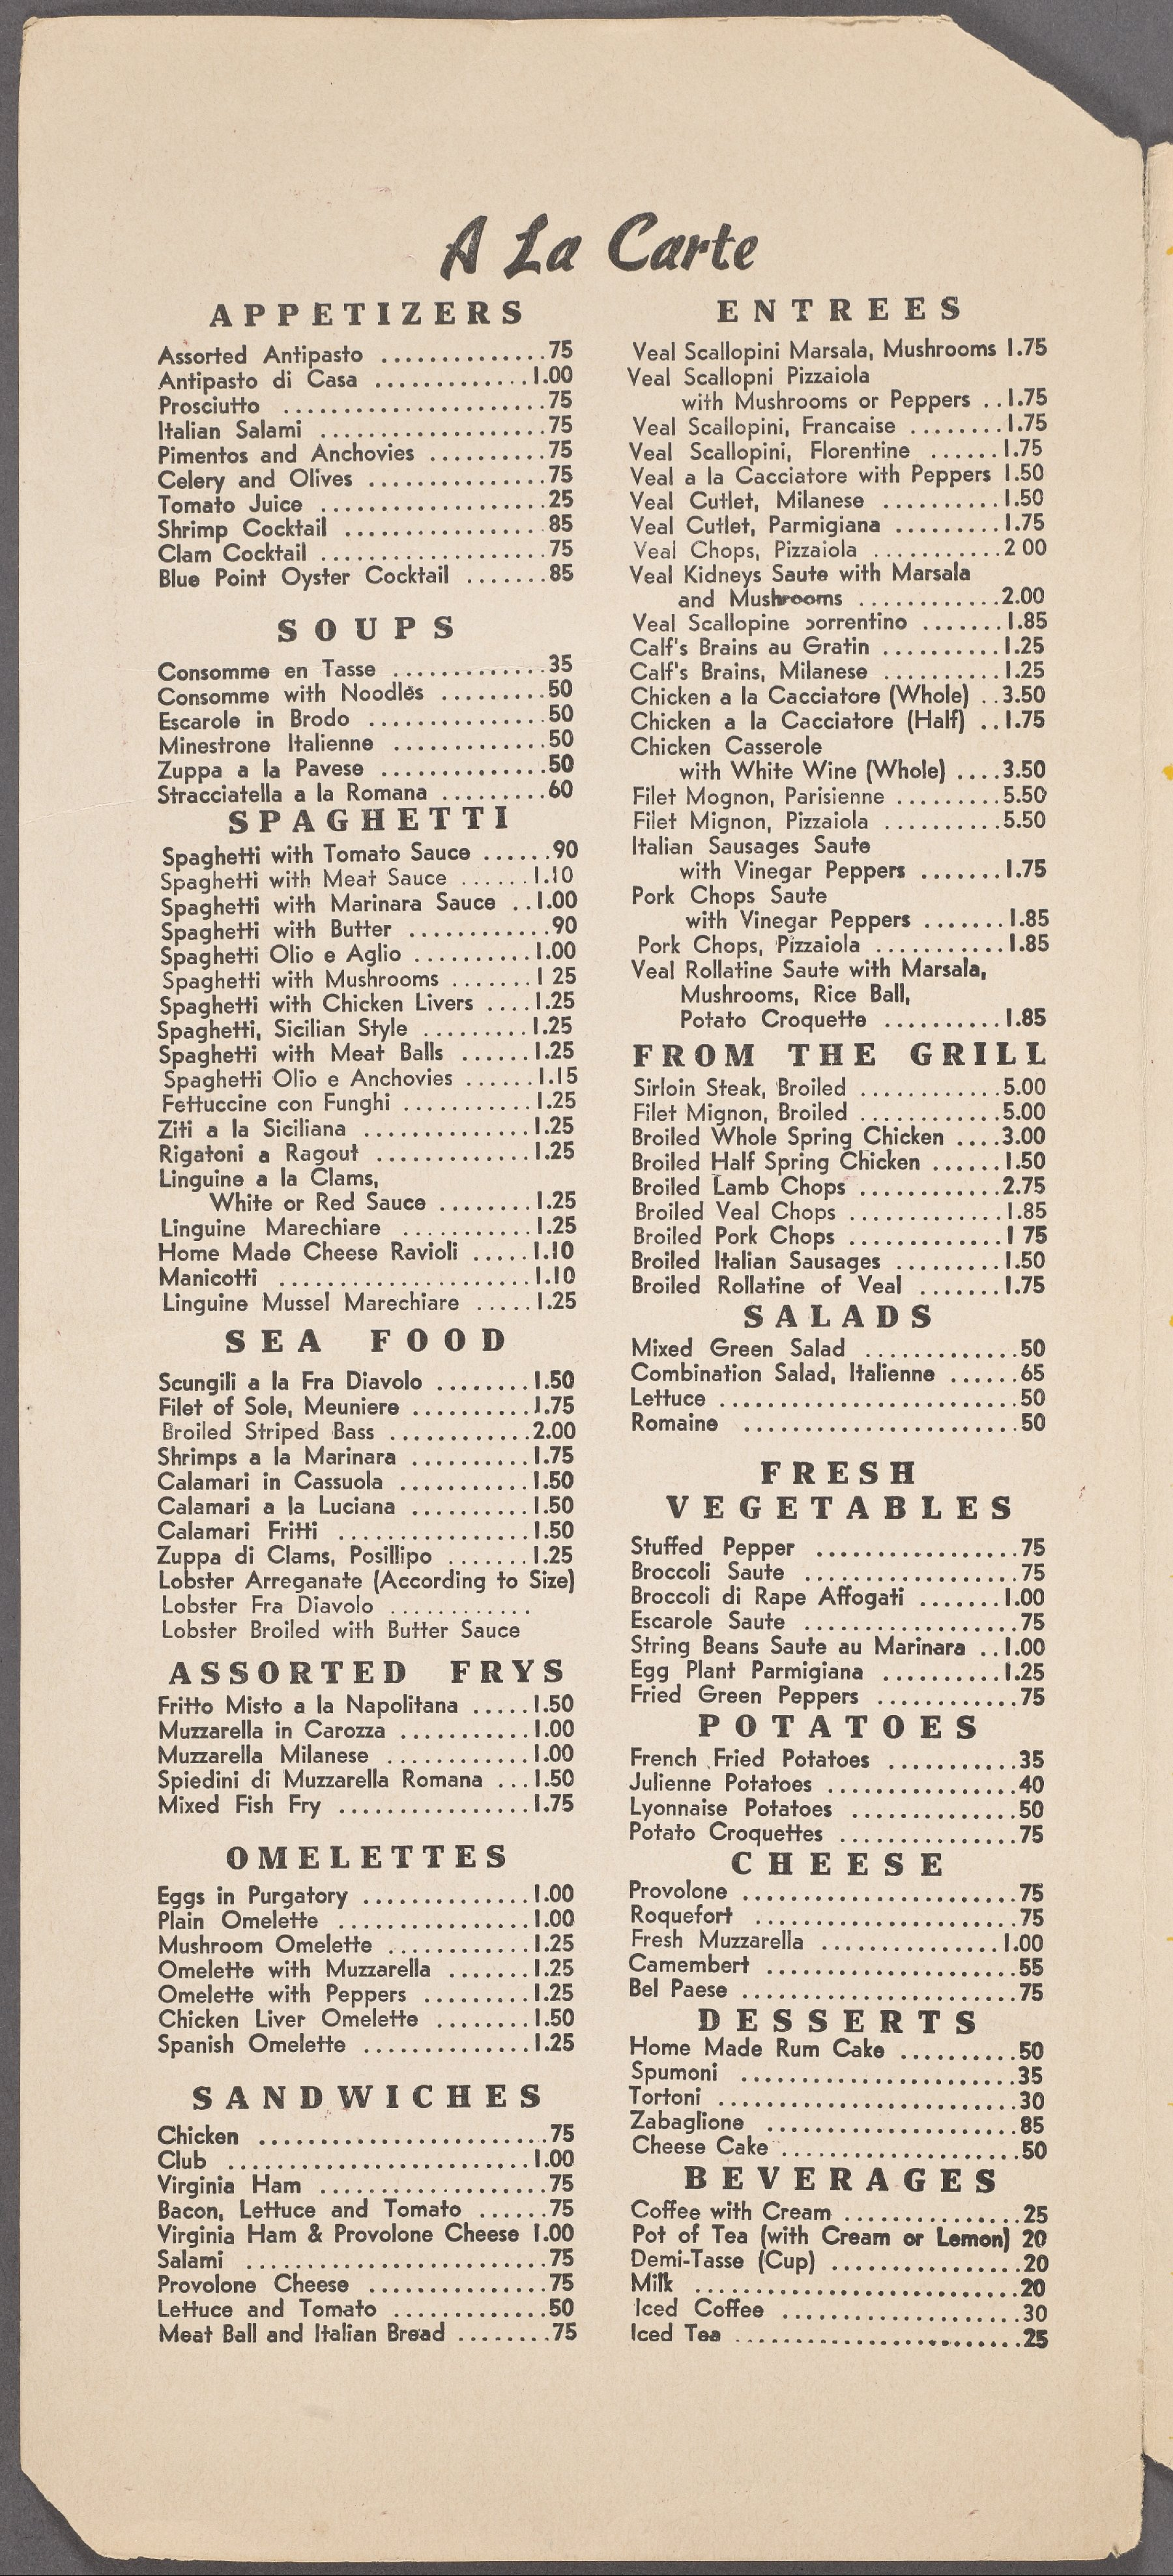 parmigiana? - We searched old menus for listings of chicken parmesan or parmigiana prior to the 1960's but we could not find any. What we found is plenty of veal and eggplant parmigiana.